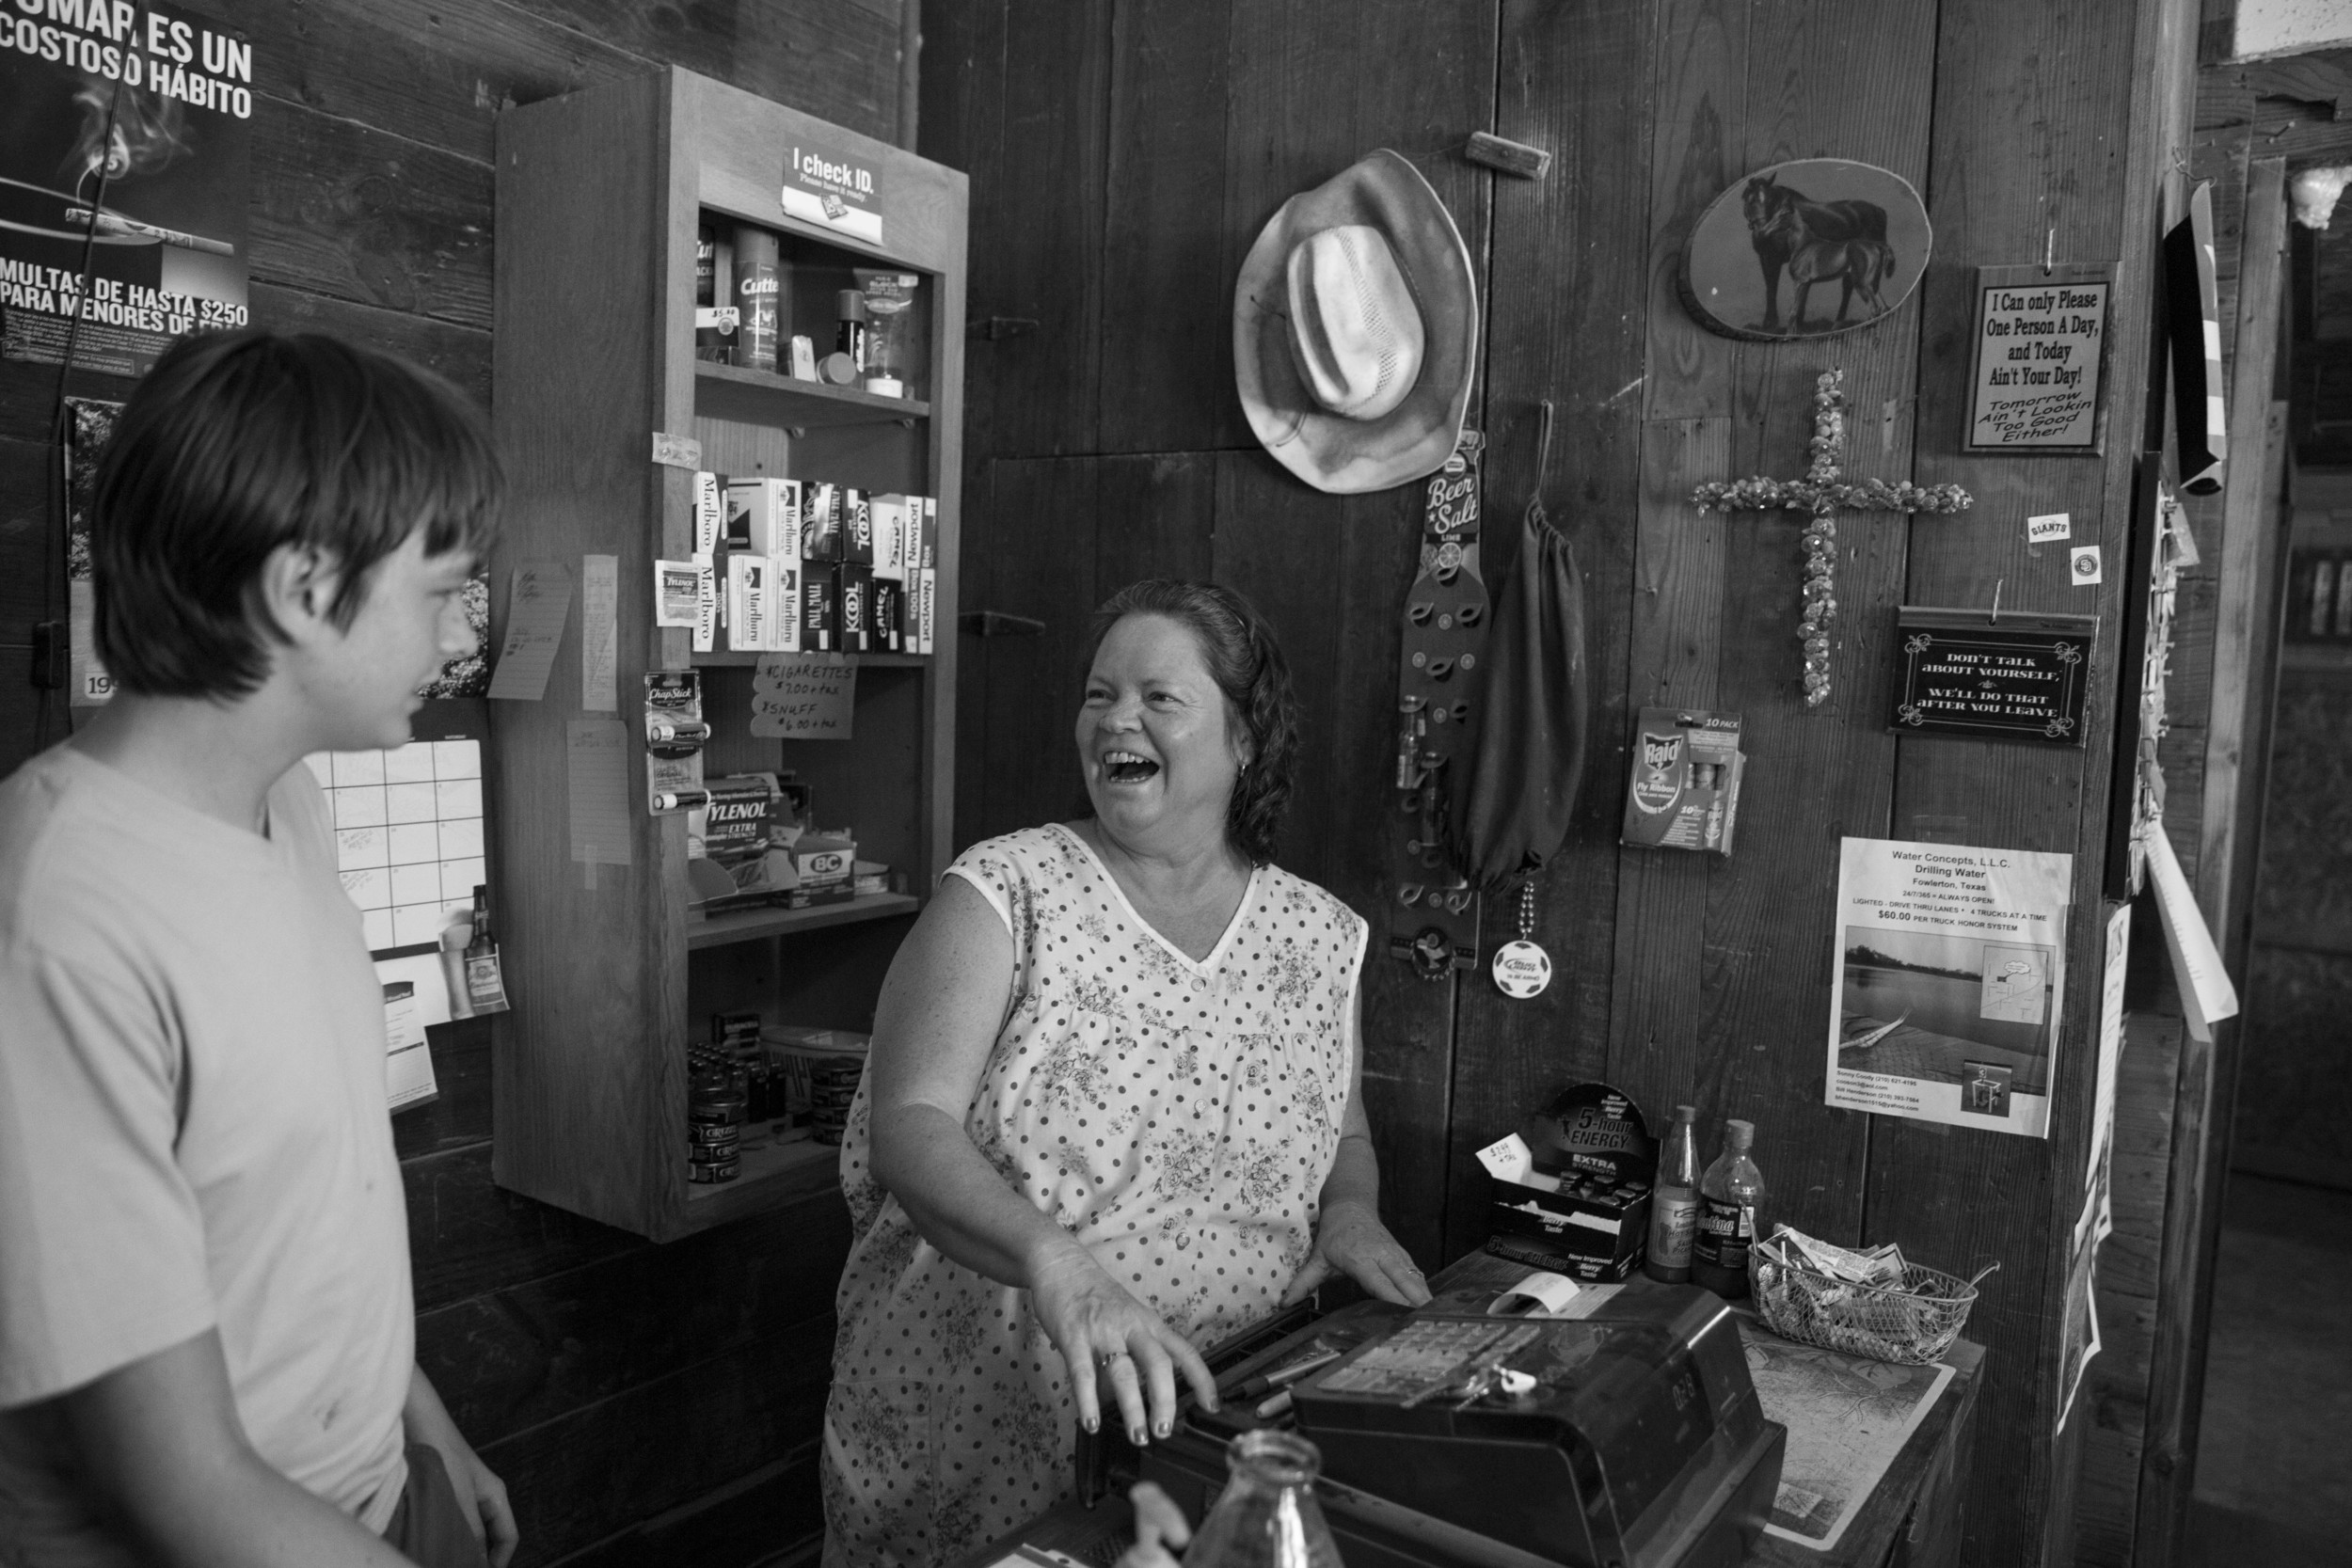 Joy Tipton and her son Evan Tipton laugh as they joke about how much Evan works at the Tipton family's roadside store The Little White House in Fowlerton, Texas on August 5, 2015.  The store is along the highway between Tipton, Texas and Cotulla, Texas, and mainly serves hunters and oil field workers.  Joy Tipton said that she hears fewer oil field trucks driving by everyday and that business is dwindling.